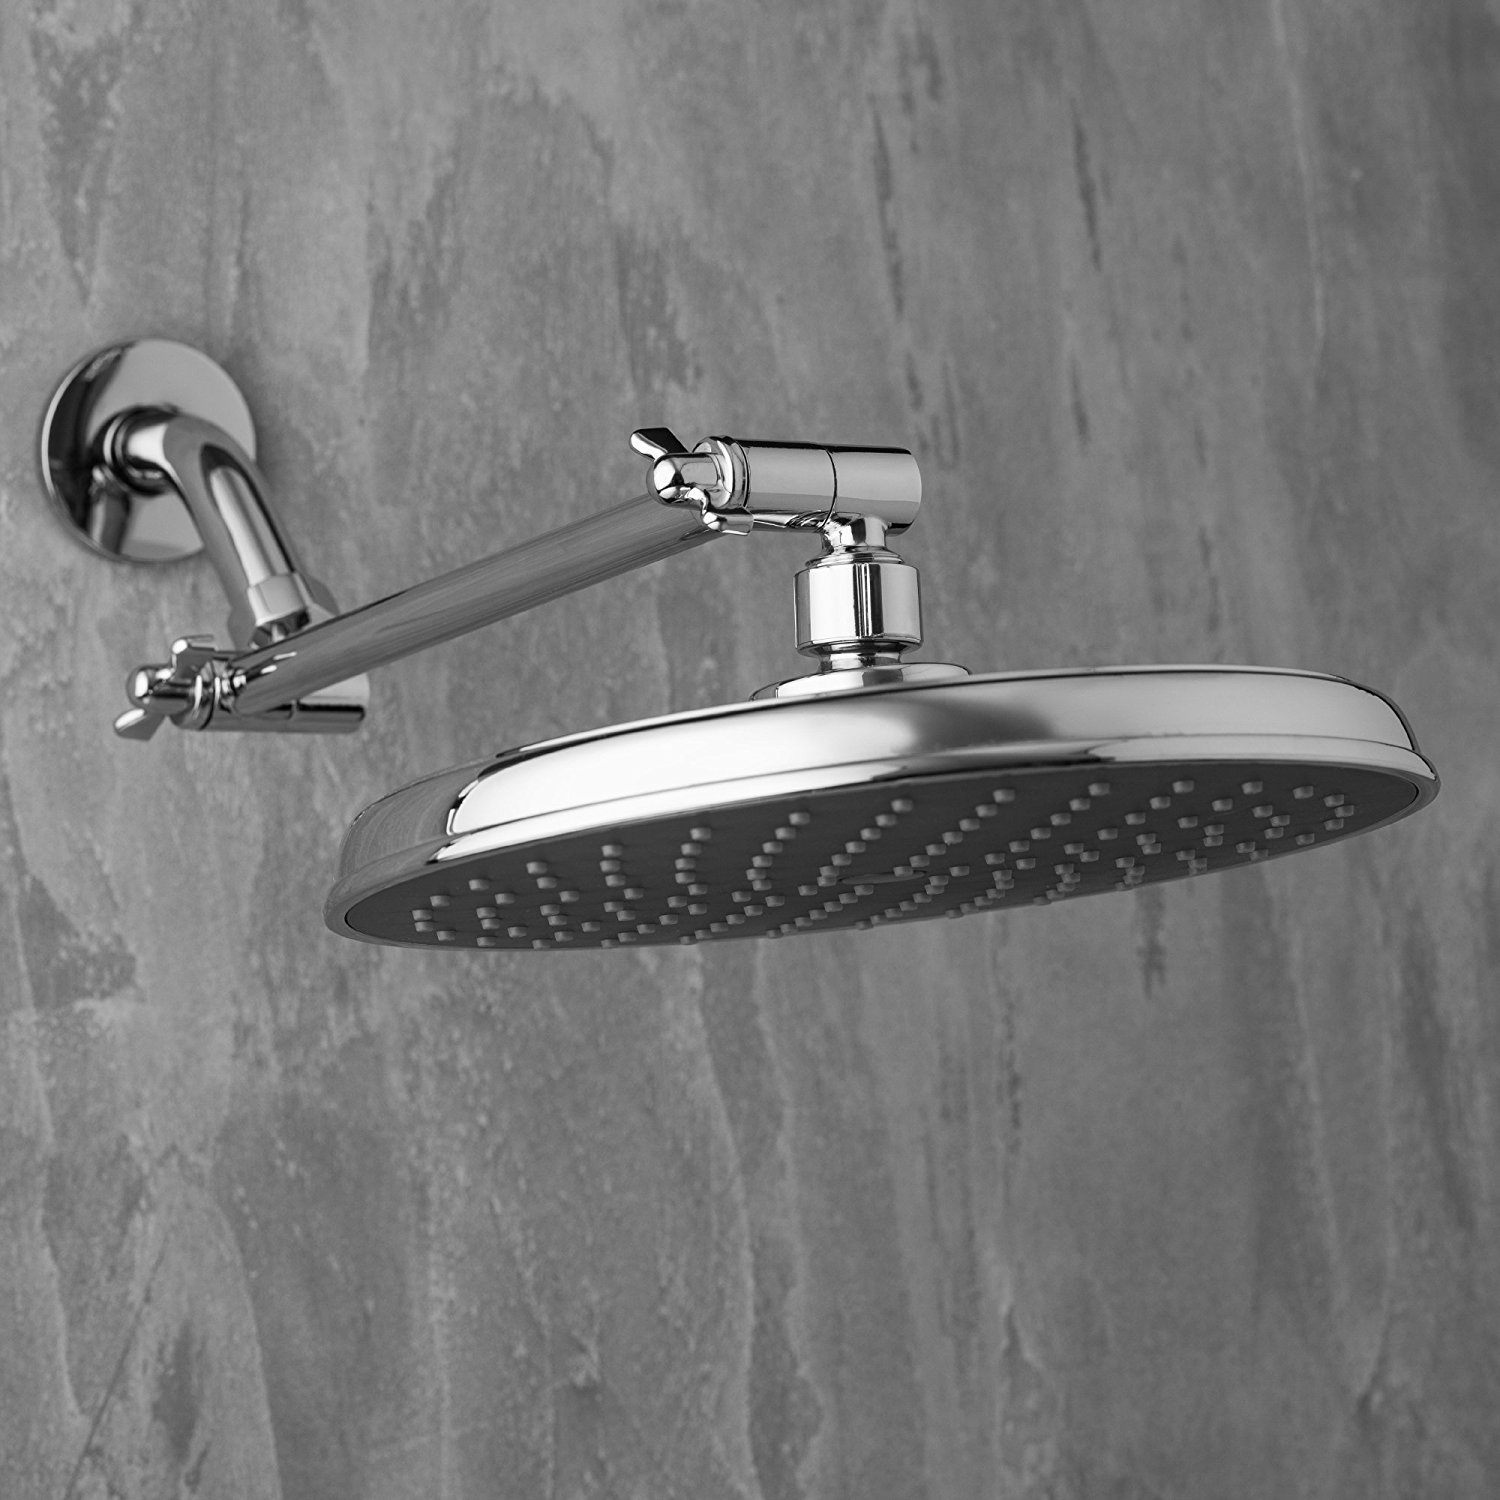 Cheap Extension Shower Find Extension Shower Deals On Line